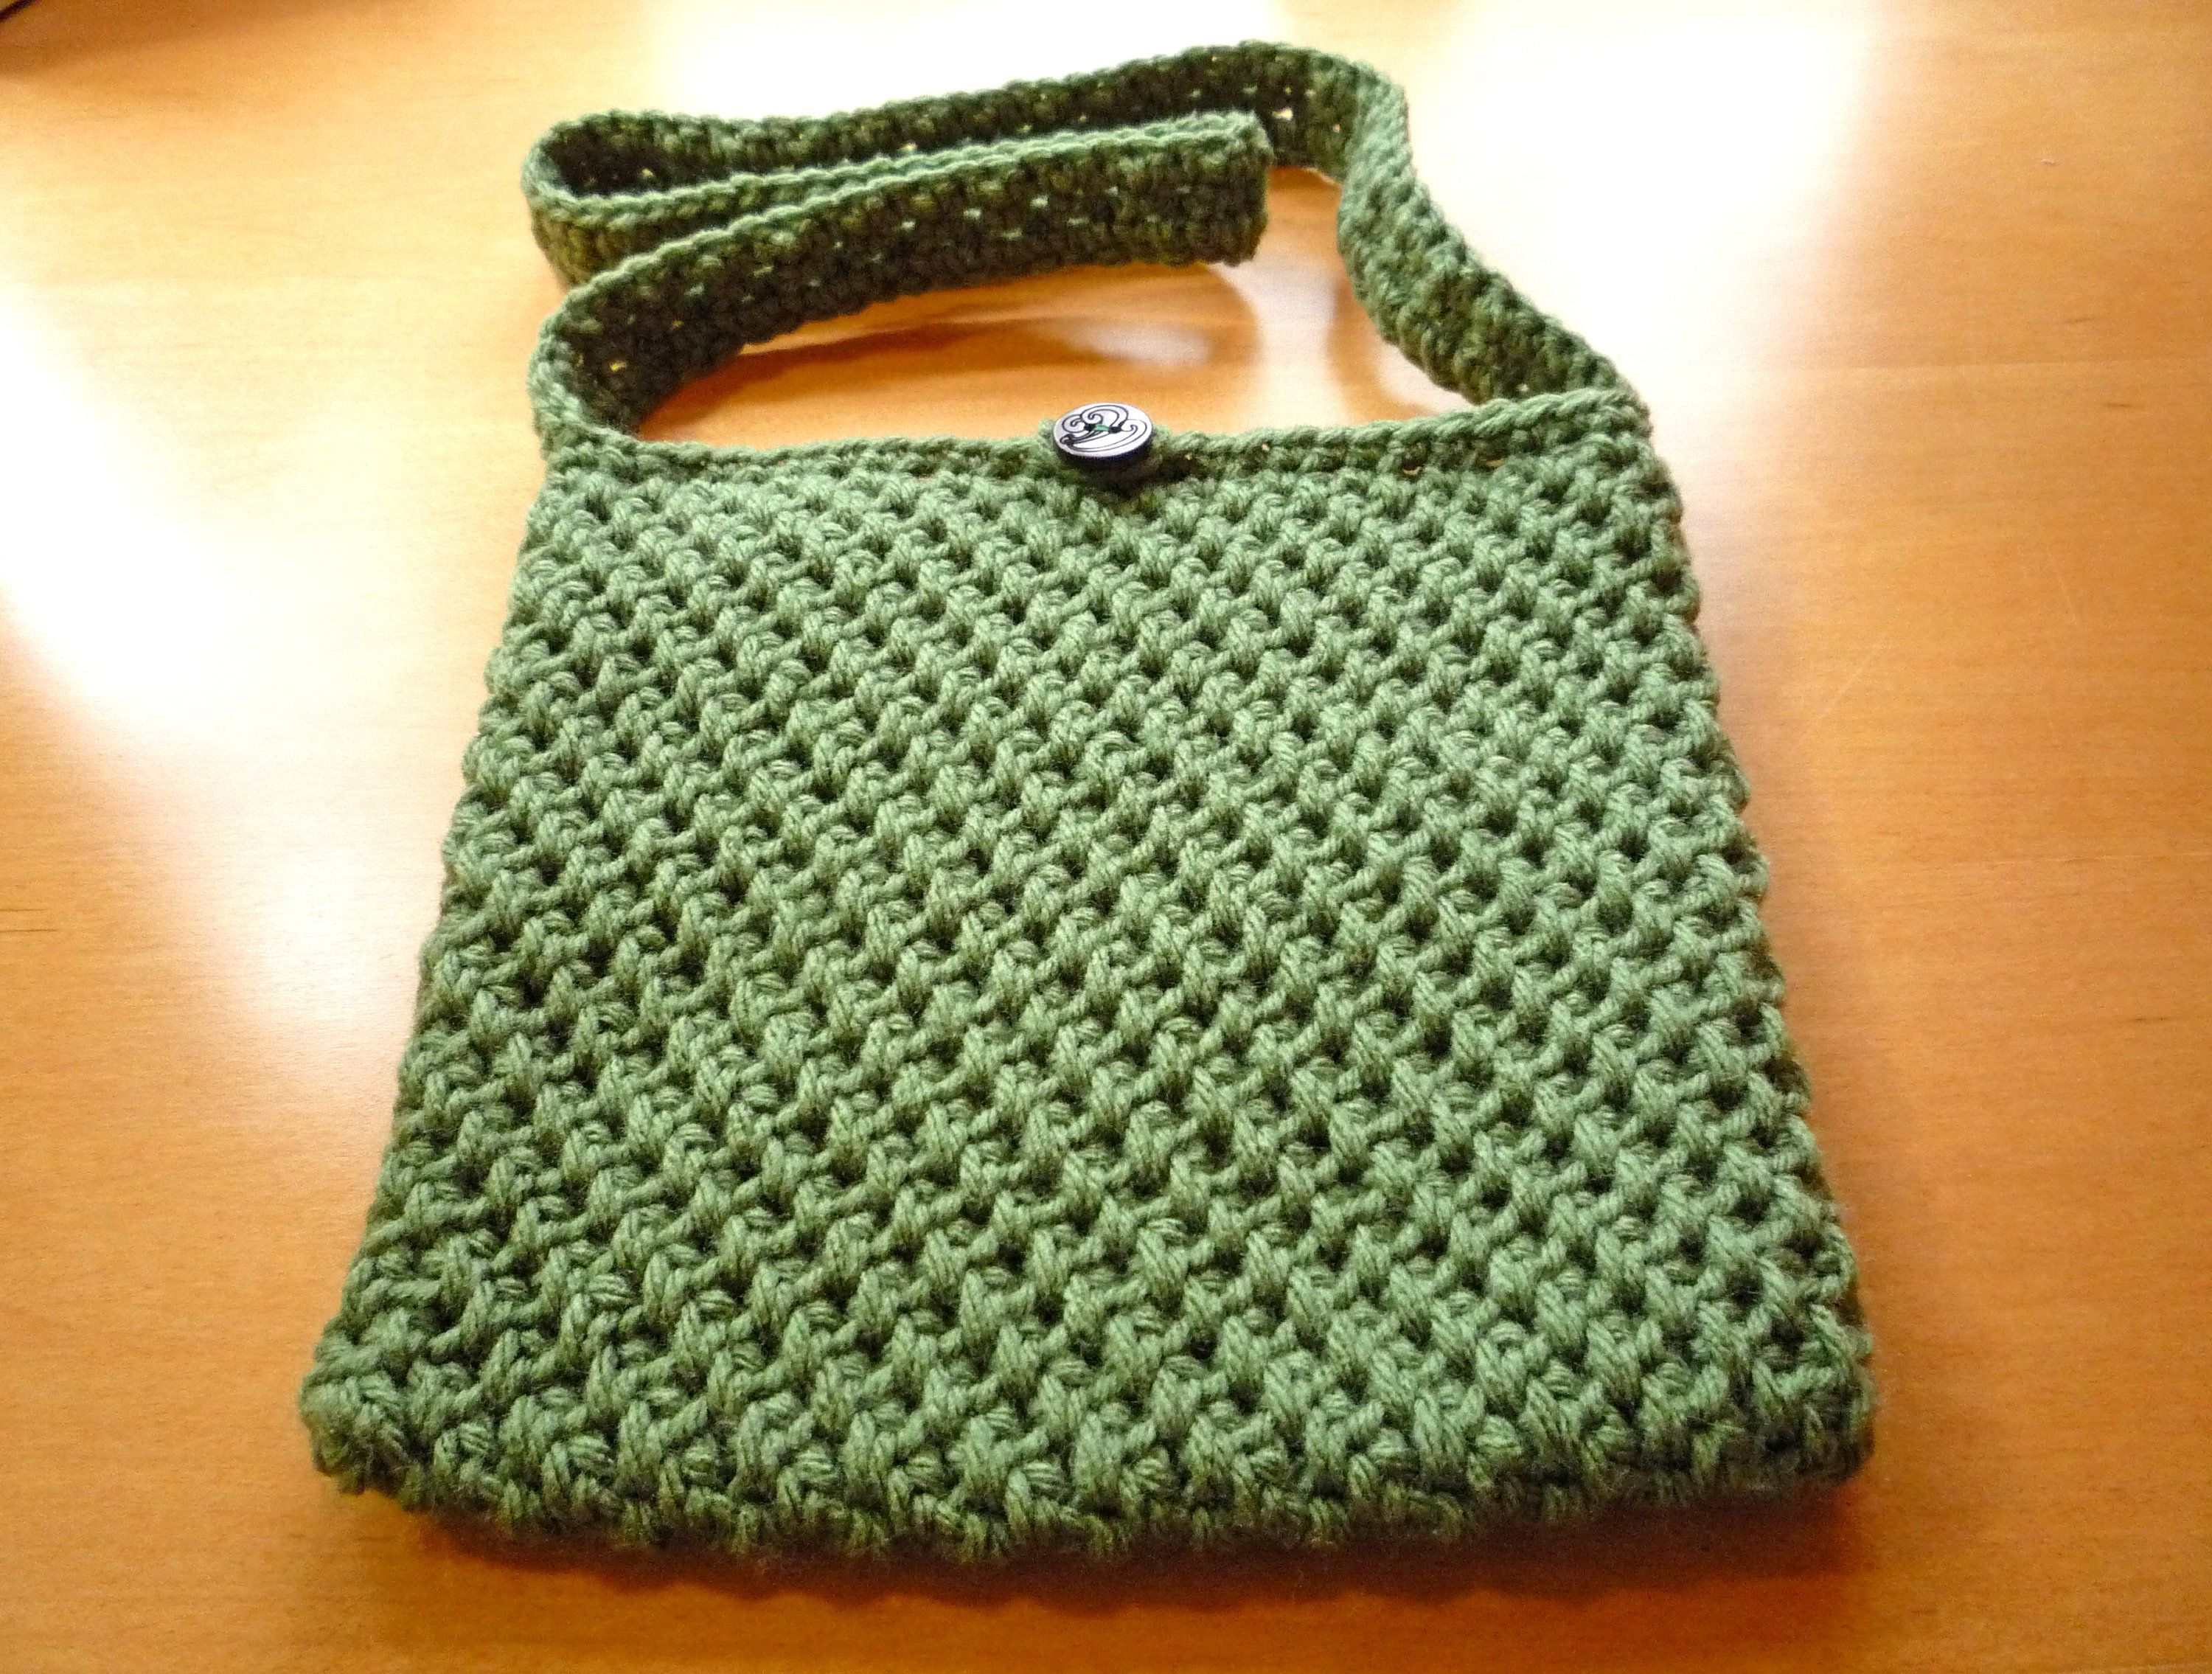 Sage green crochet purse,modern crochet bag, small hobo bag, crochet bag boho, handmade bag crochet by CraftsByBrandyB on Etsy    Knit bags have always been one of the most popular models of handbags, whether hand-made or ready-made. Wicker bags, crocheted bags, macramé bags, corduroy mesh bags and more. Crocheted bag making is always the most interesting type of bag making. You can choose any motif you wish to make thi... #Bag #Boho #Crochet #Green #Handmade #Hobo #pursemodern #Sage #Small